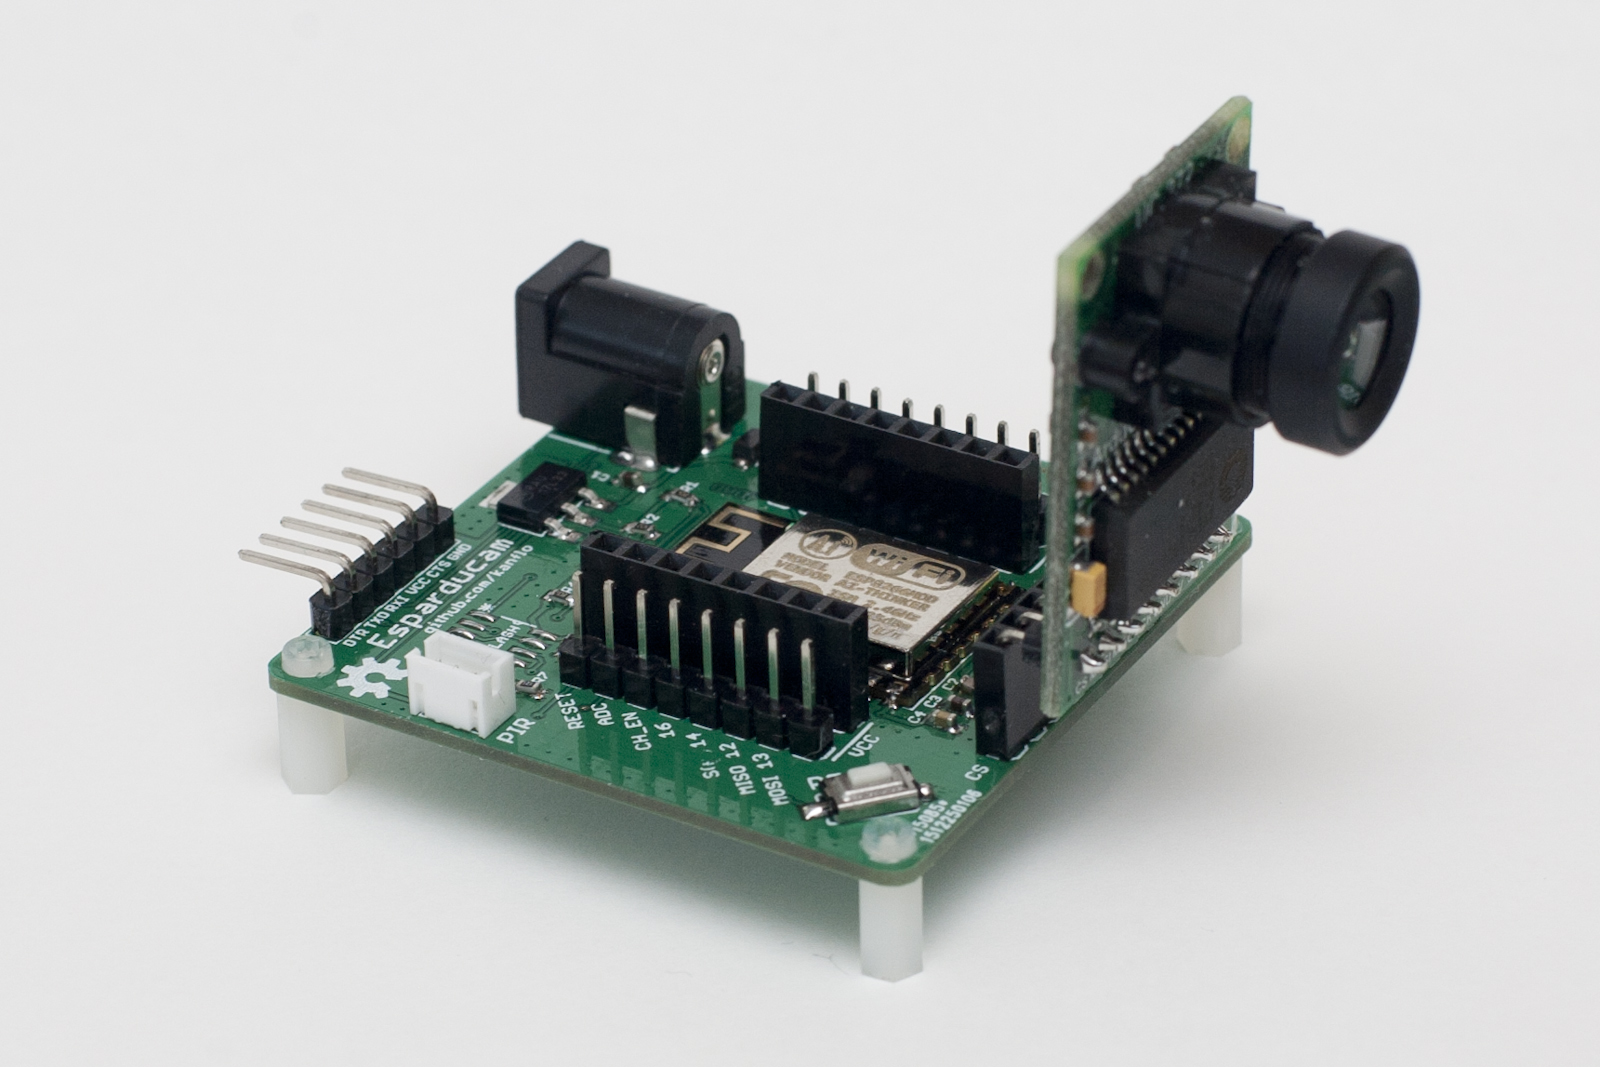 Building a low cost wifi camera johan kanflo - Low cost camera ...